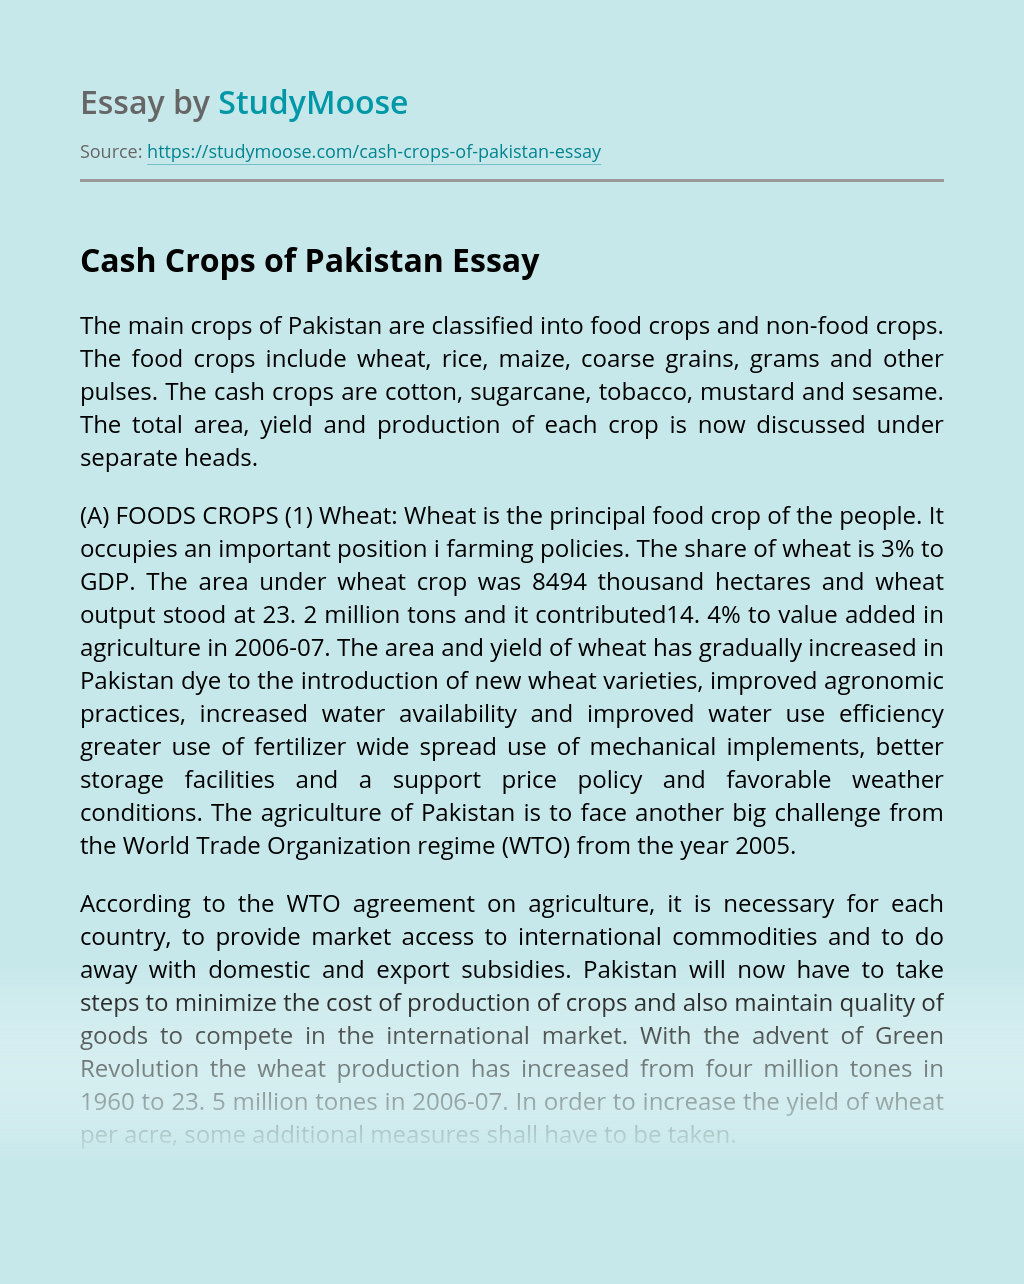 Cash Crops of Pakistan